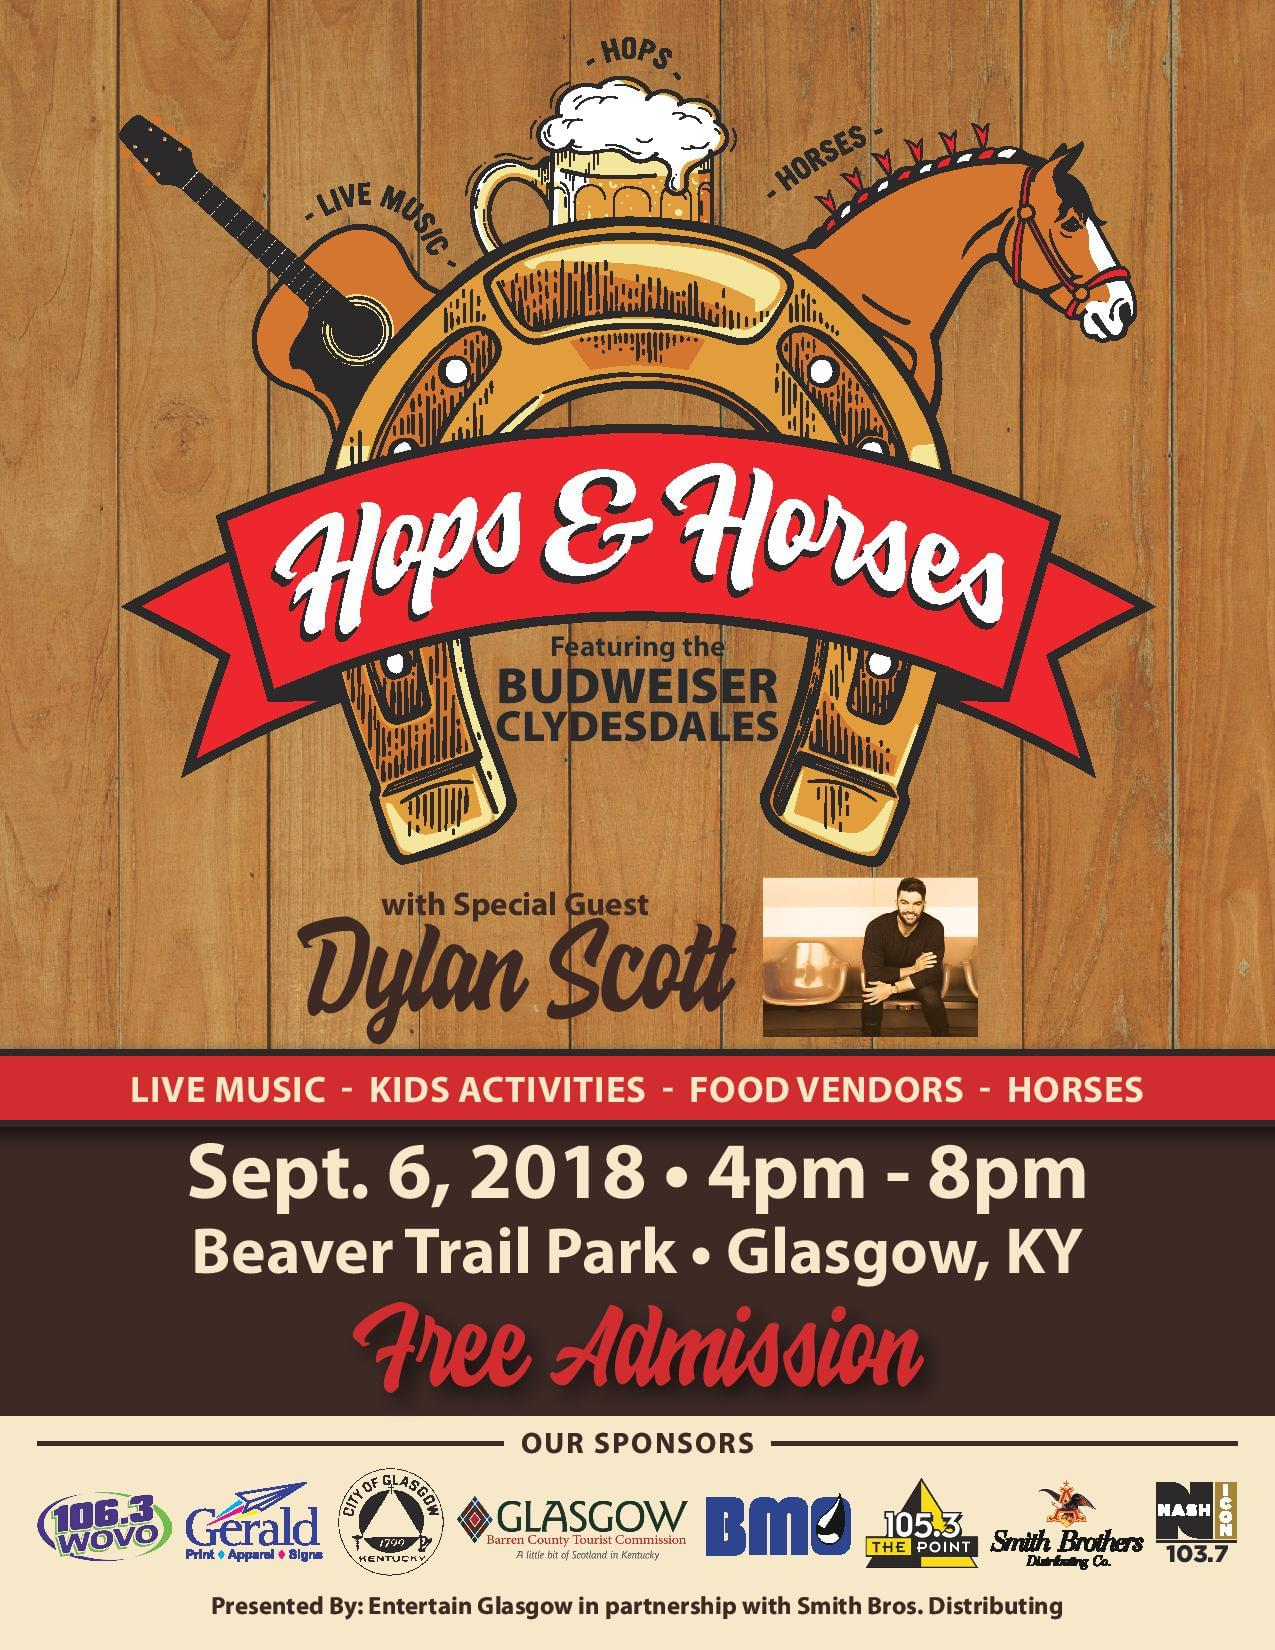 INTERVIEW: Whitney talks about Hops & Horses coming up Sept. 6